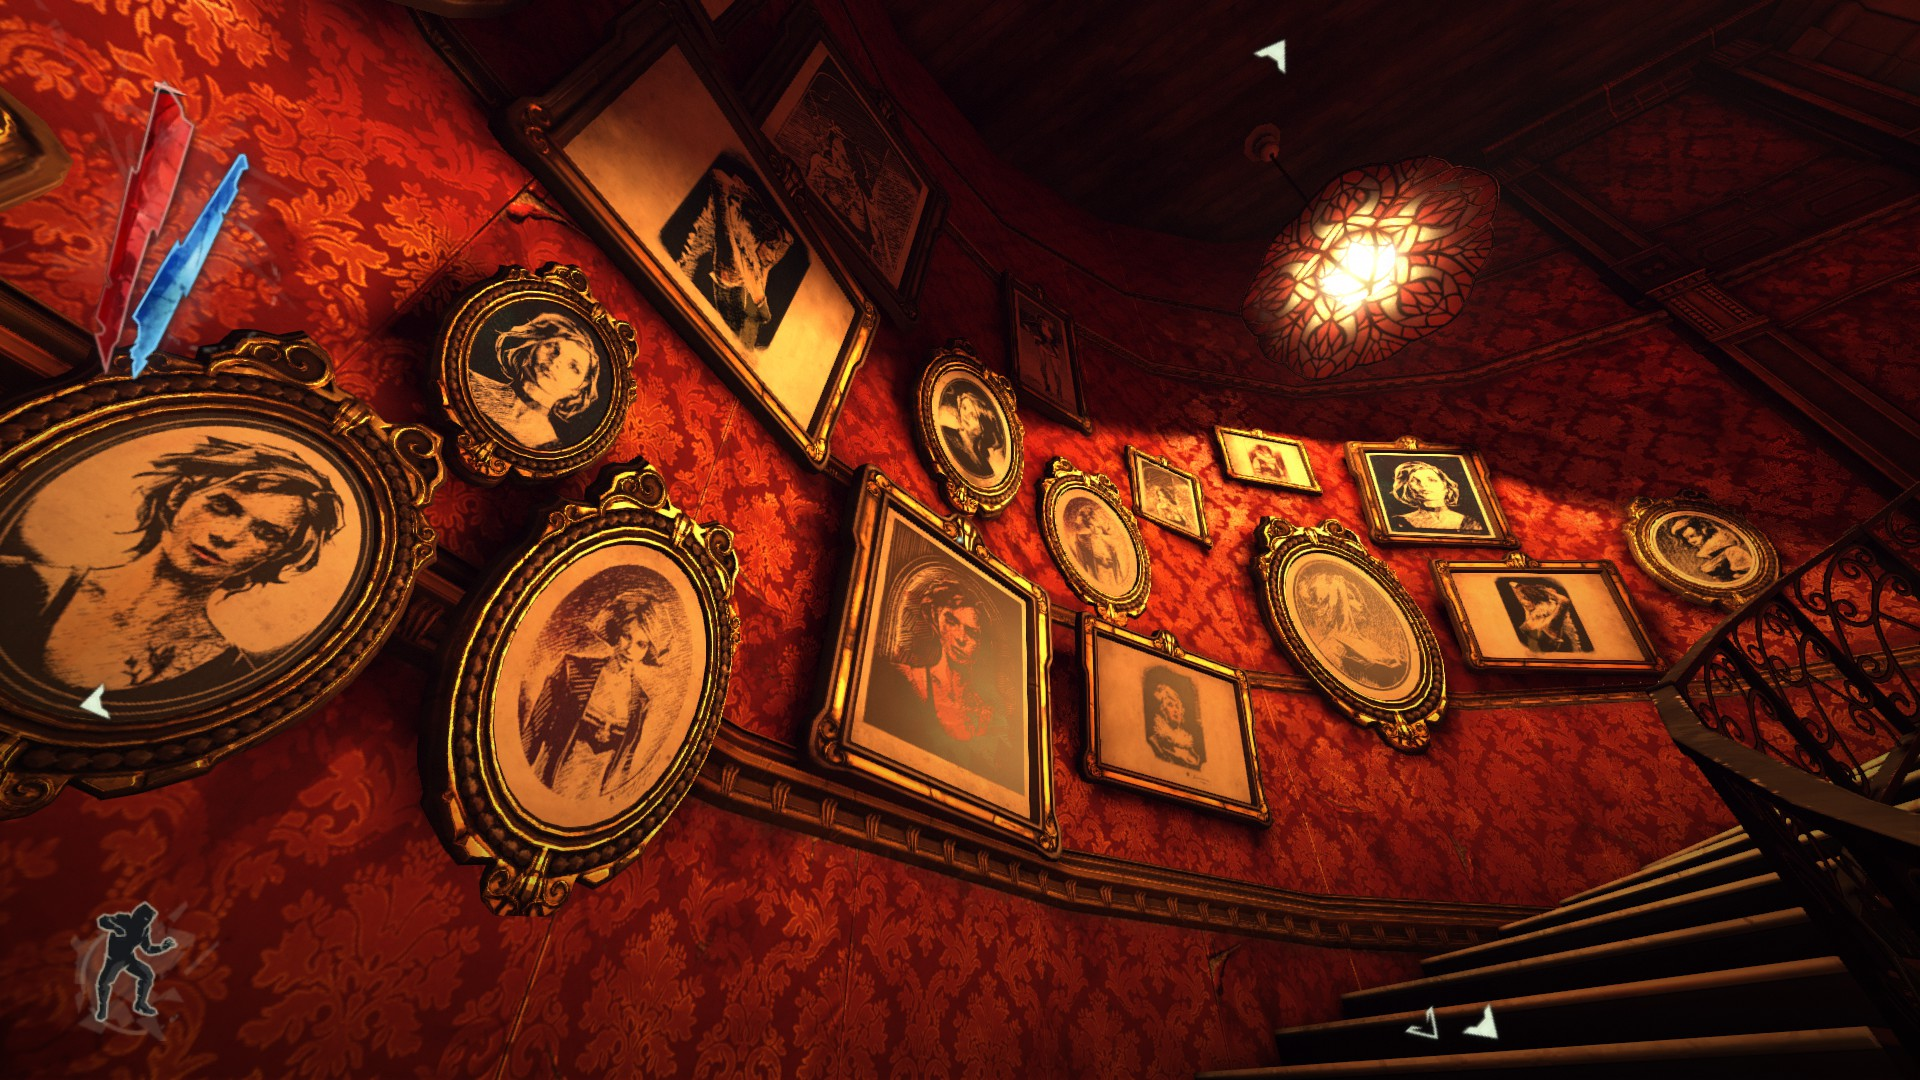 A wall with red wallpaper and filled with portraits.